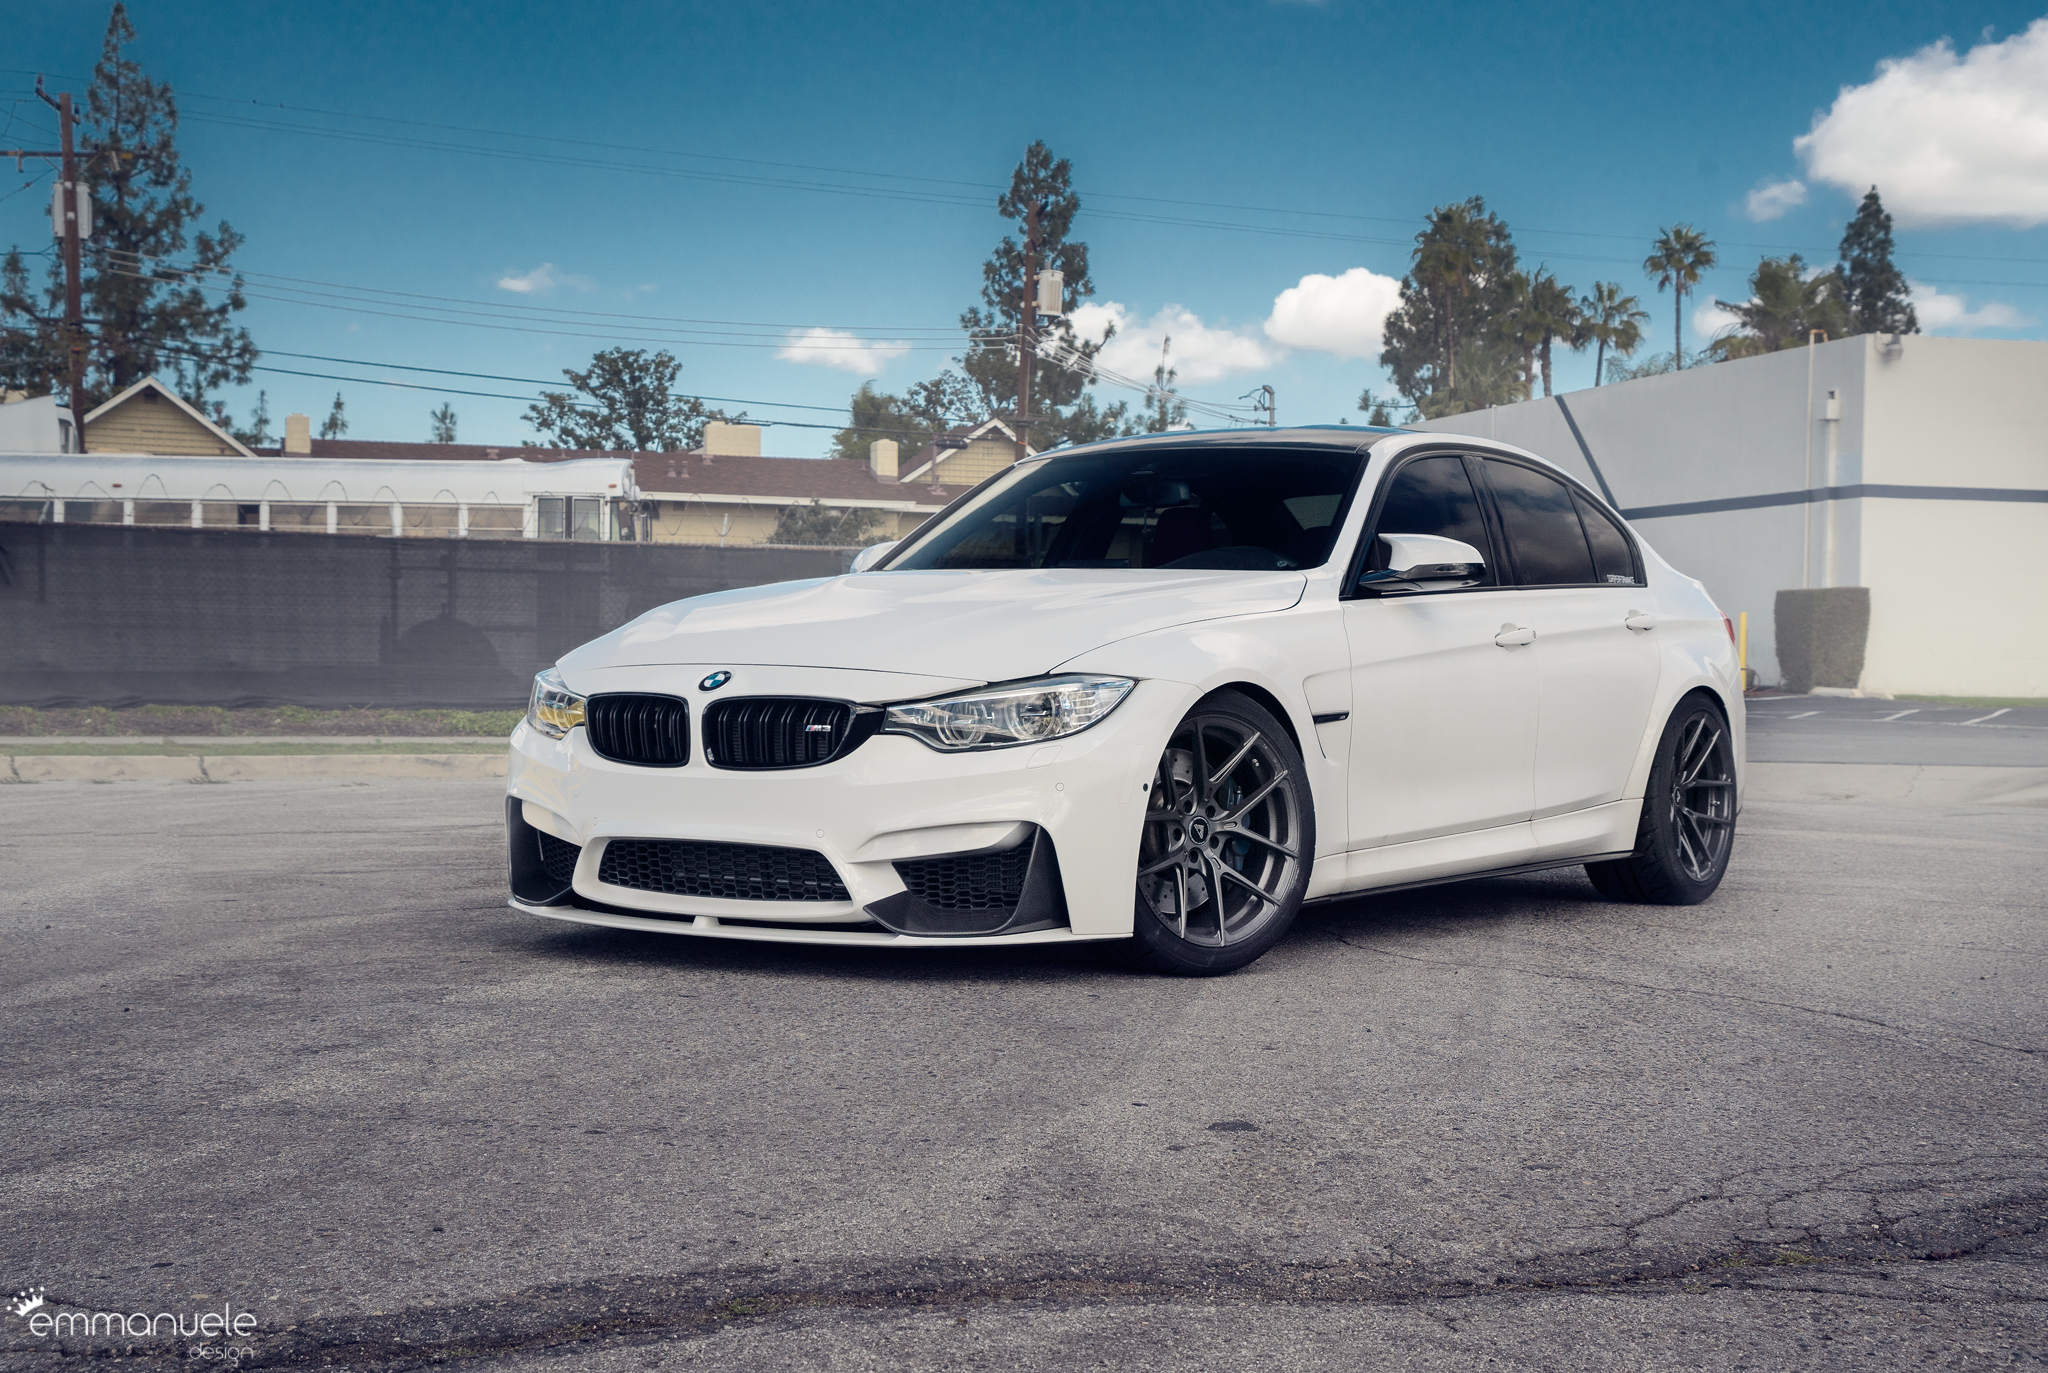 F80 M3 Lowered On Emmotion Suspension Linear Springs And